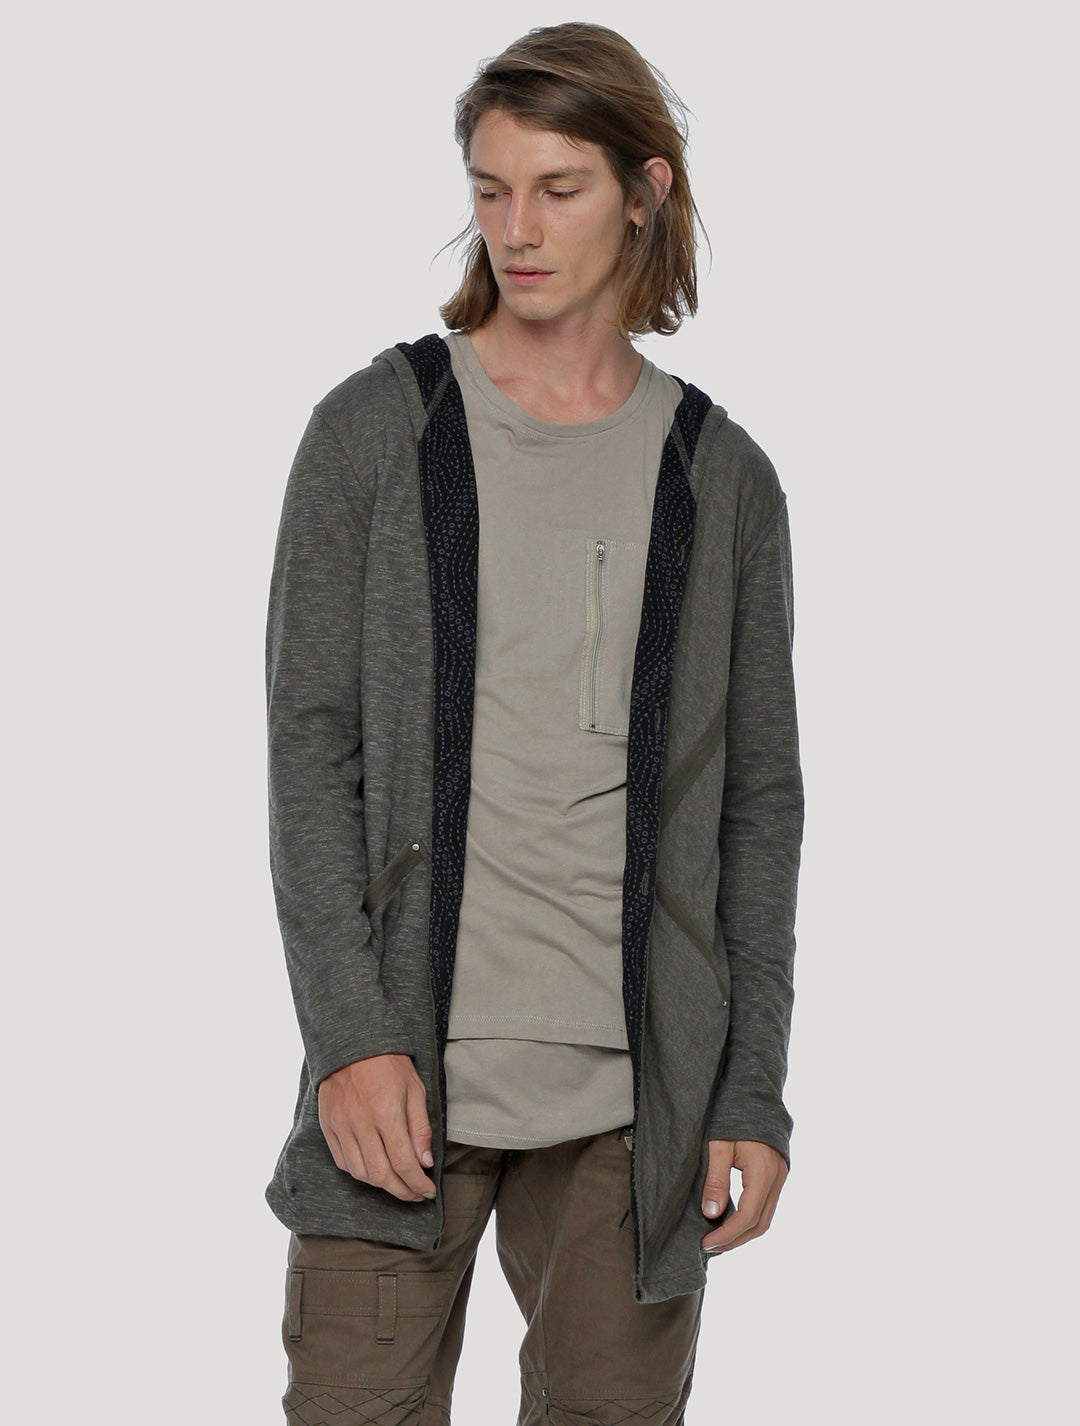 Plumped Hoodie Cardigan Light Coat